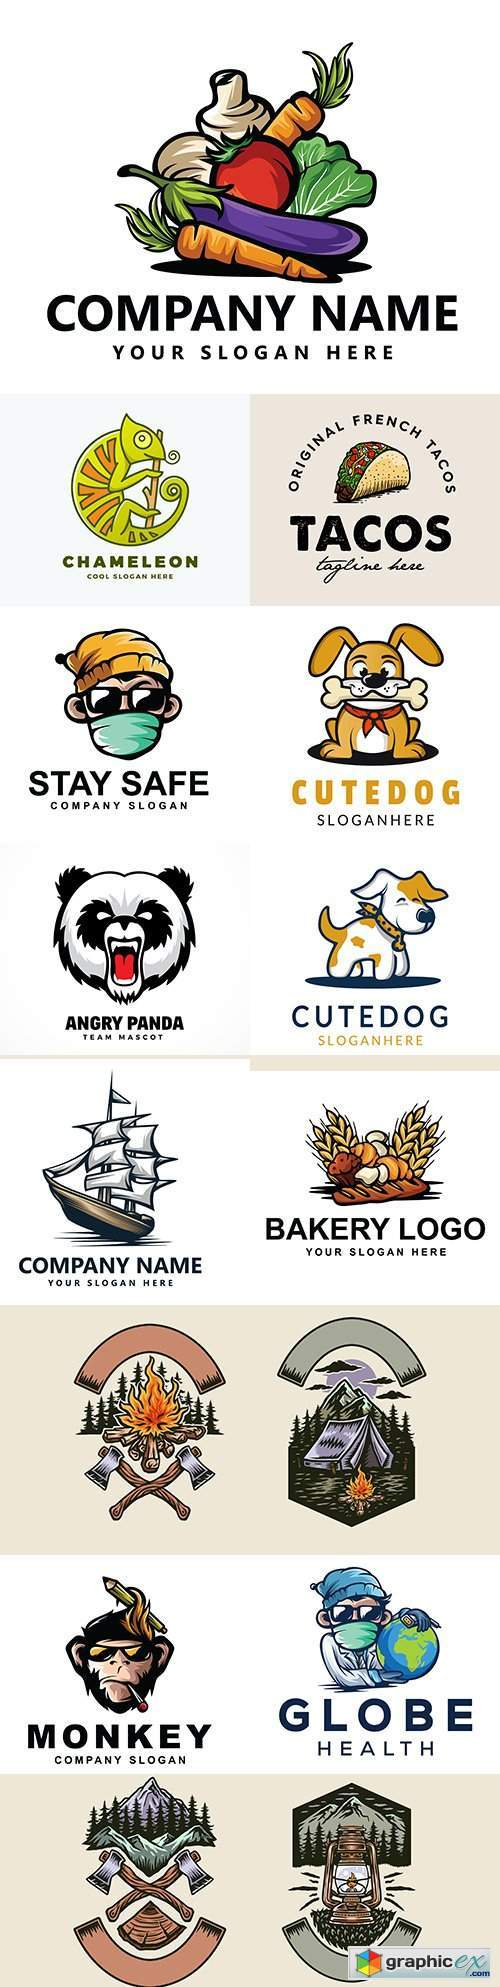 Brand name company logos business corporate design